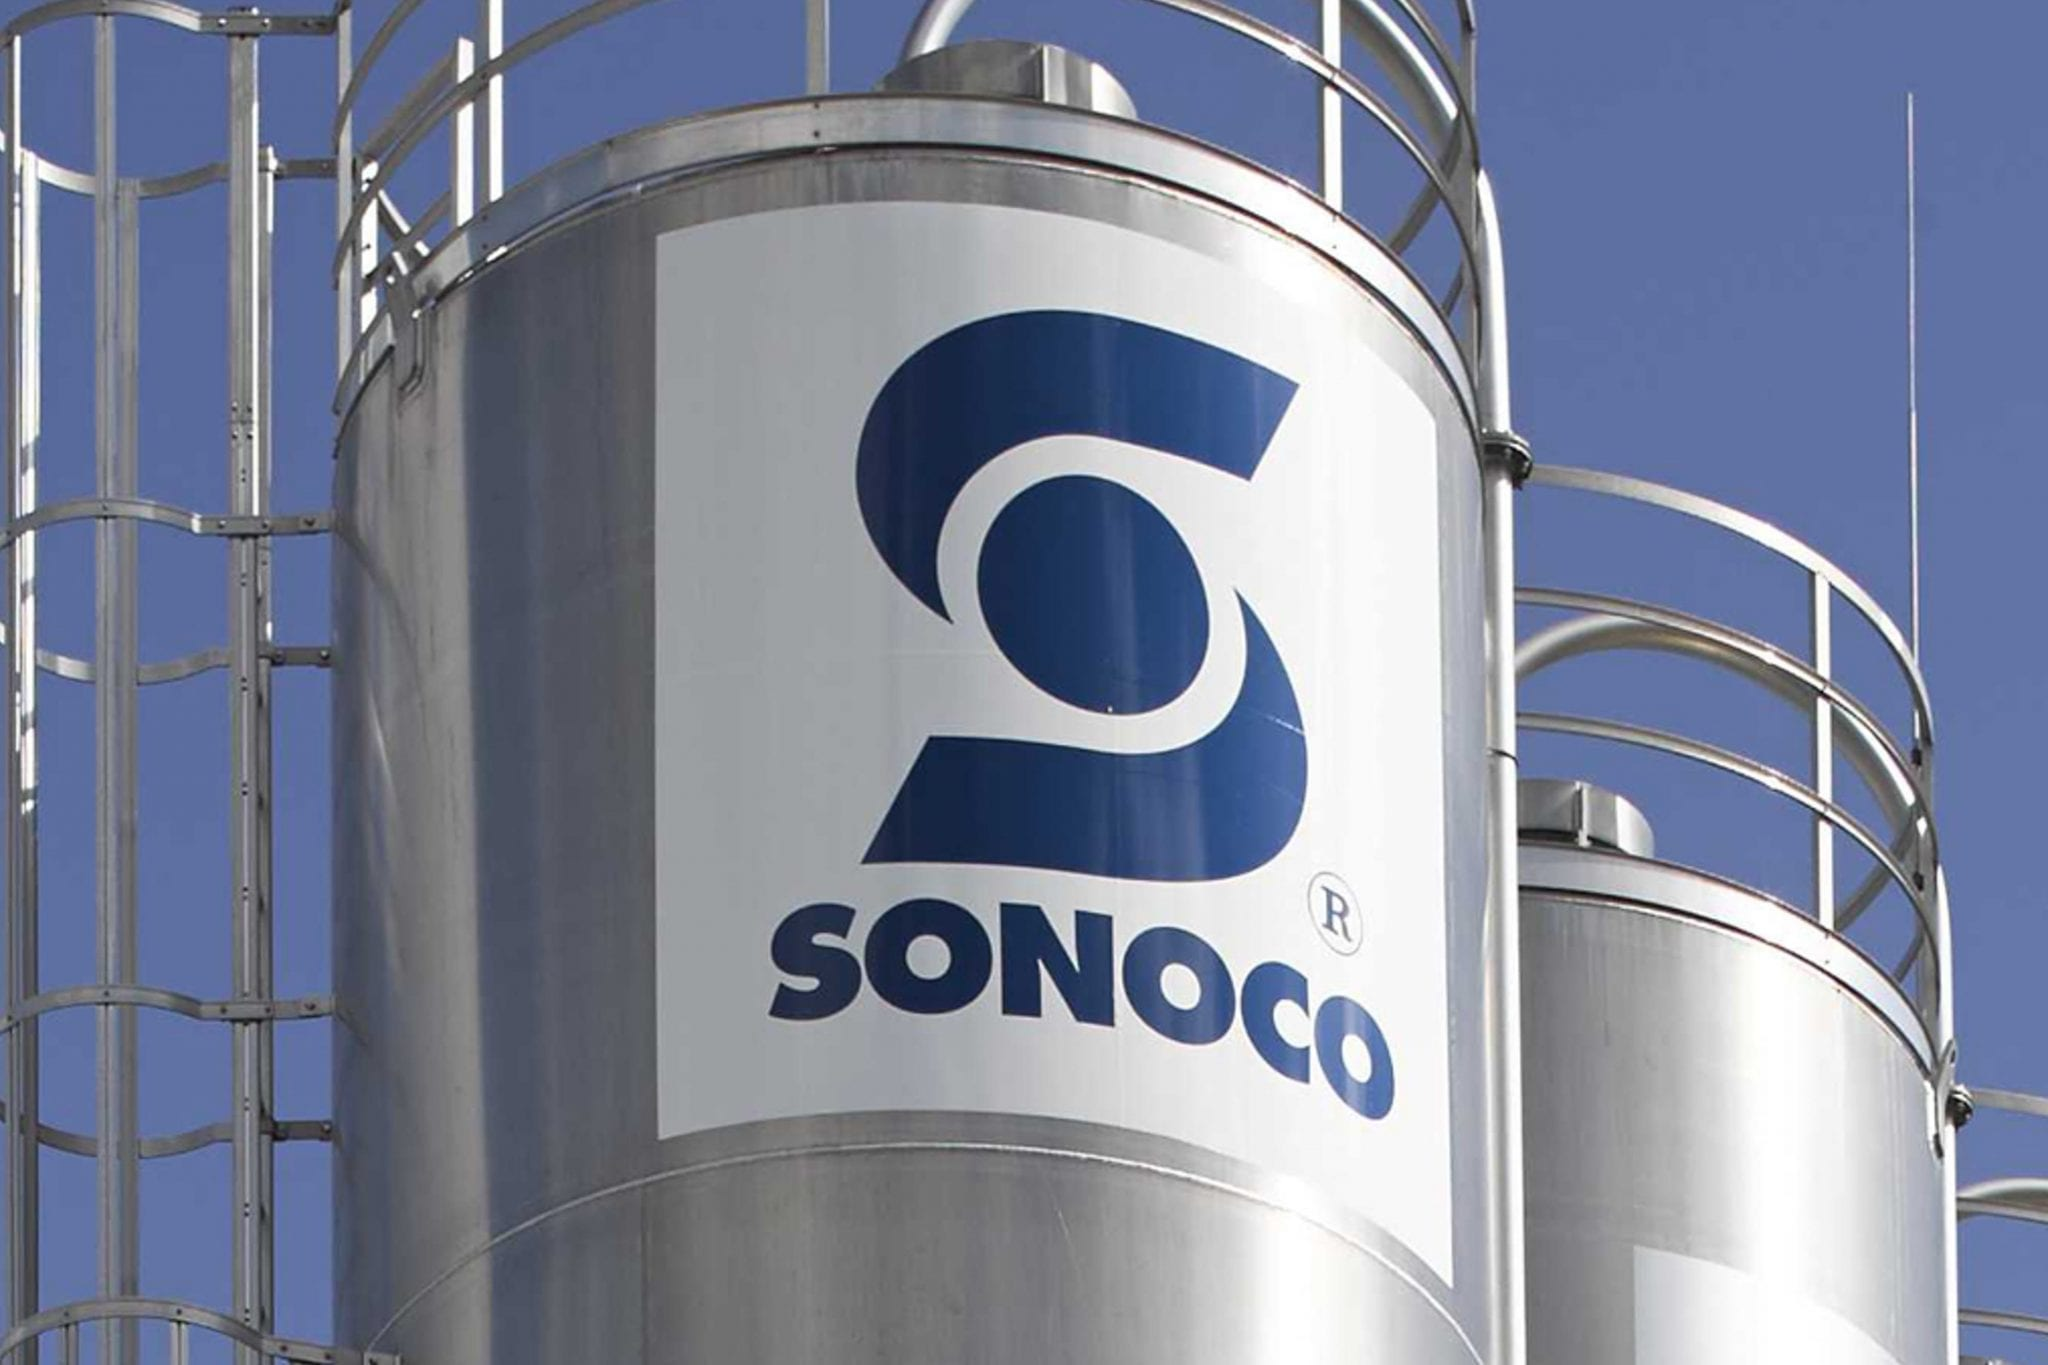 Sonoco_Zwenkau_Silos_Source-Christian-Günther-Fotodesign-1